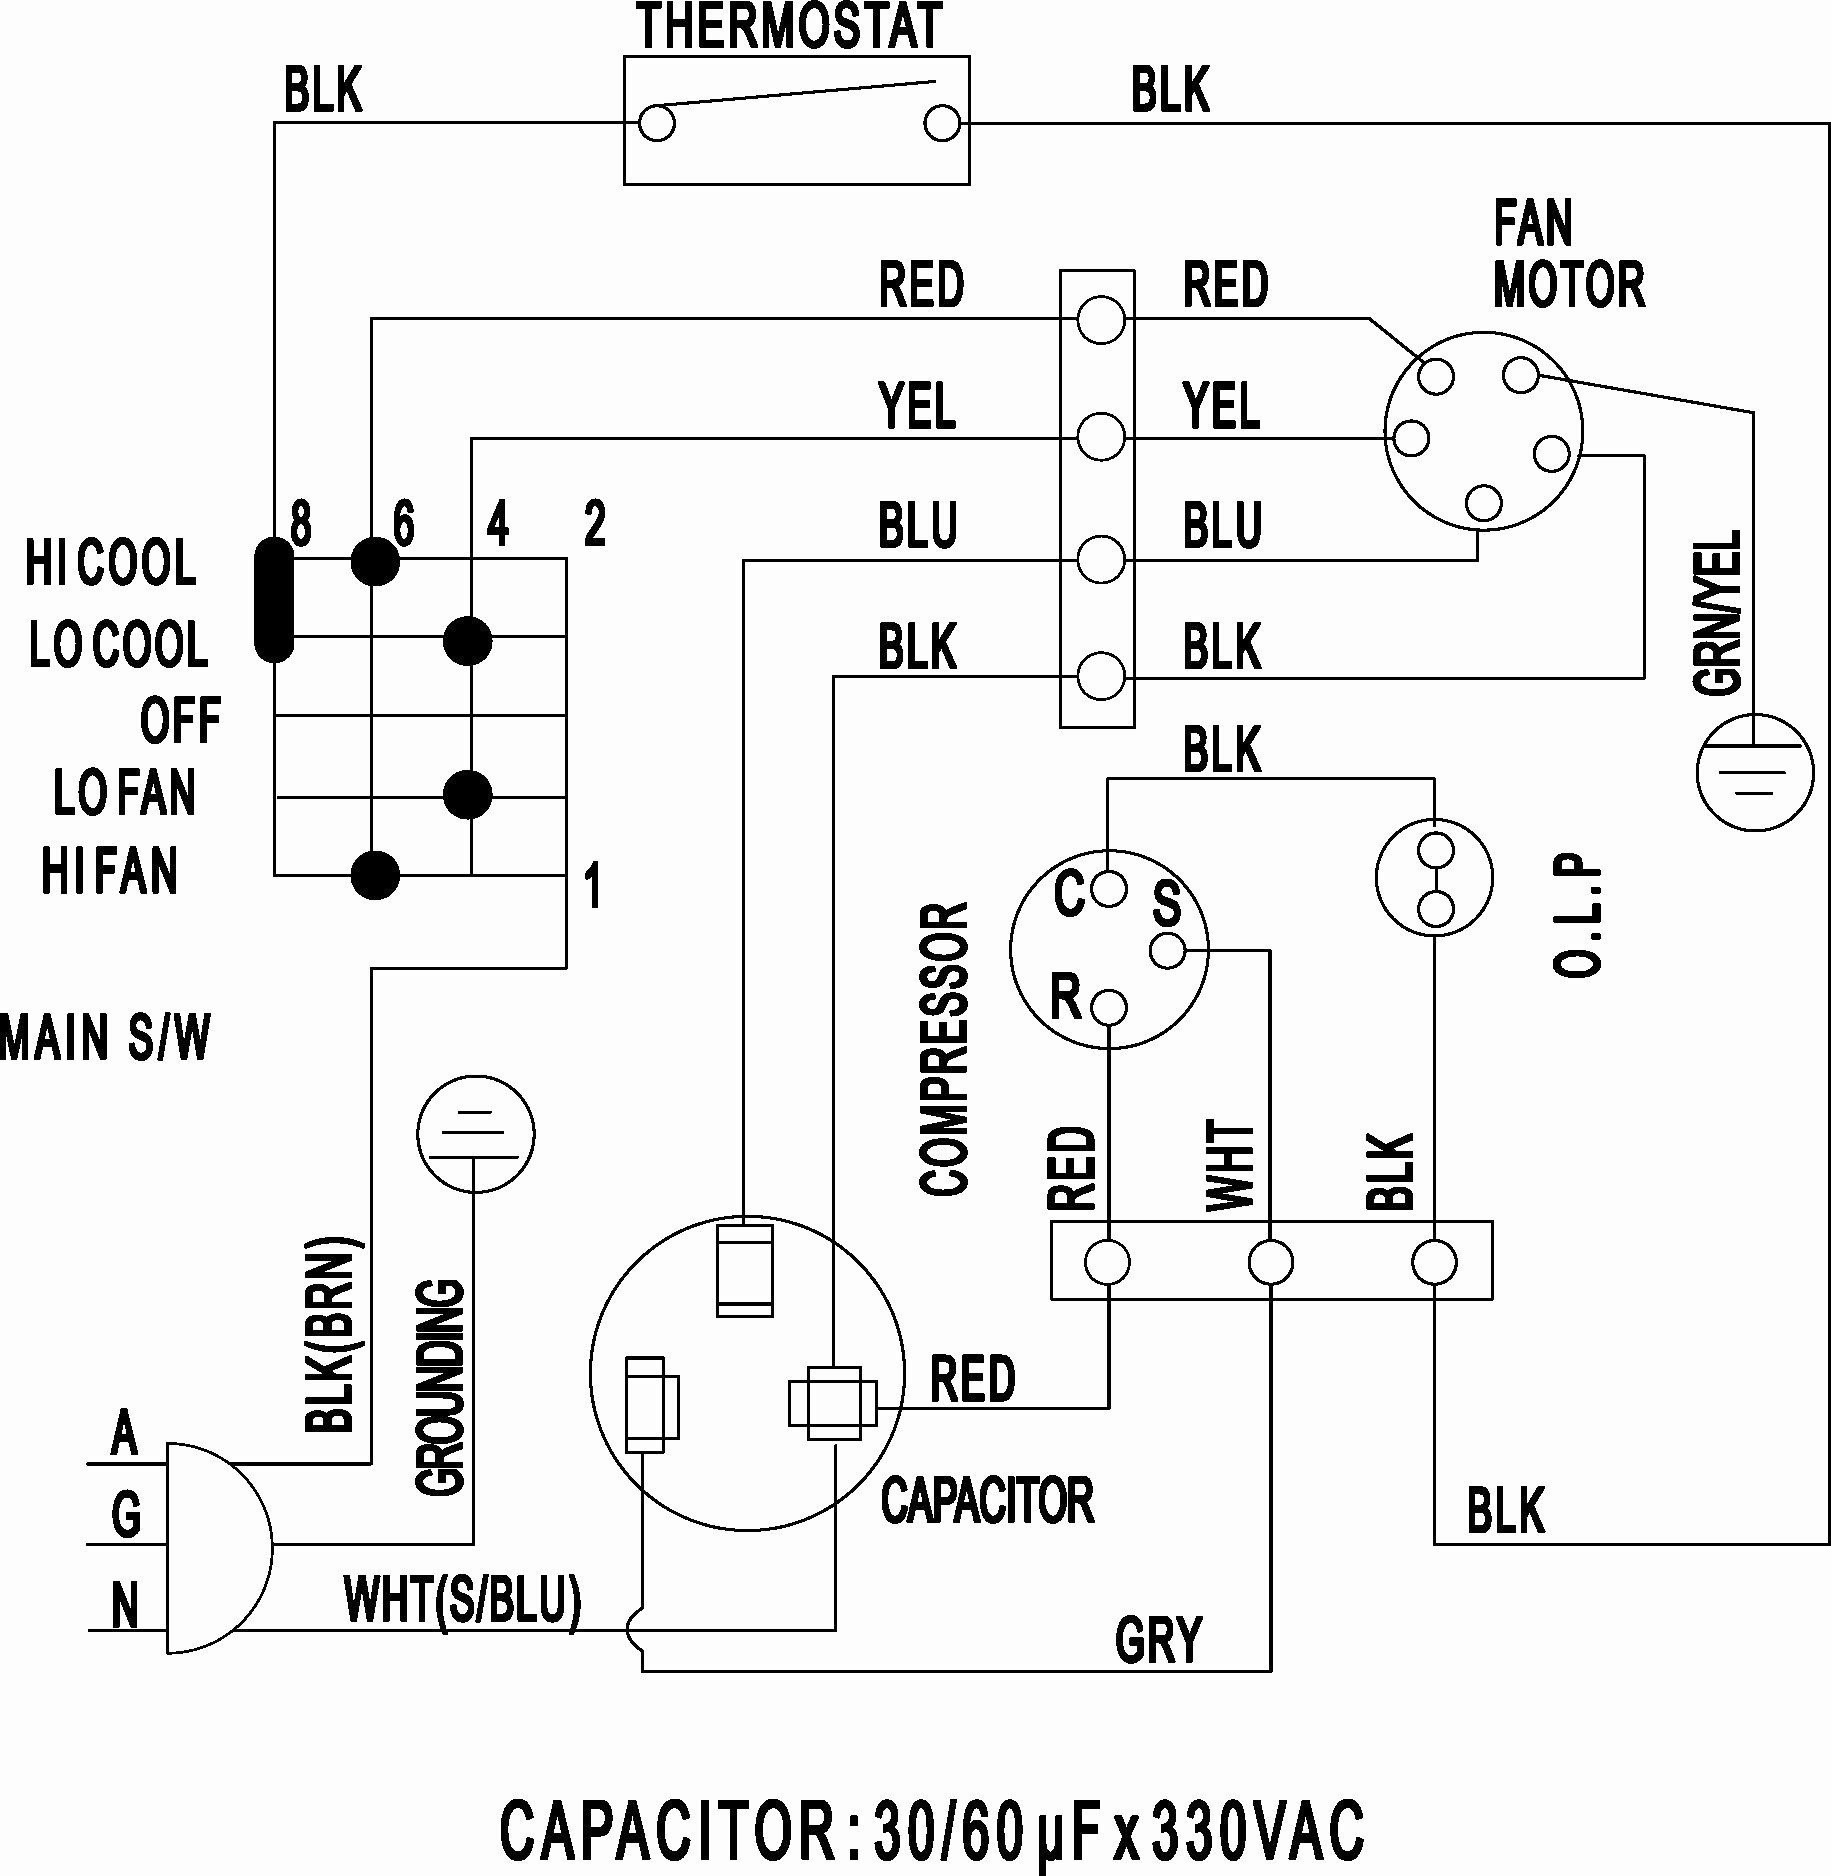 Wiring Diagram Modul Ac Split - Wiring Diagrams Circuit